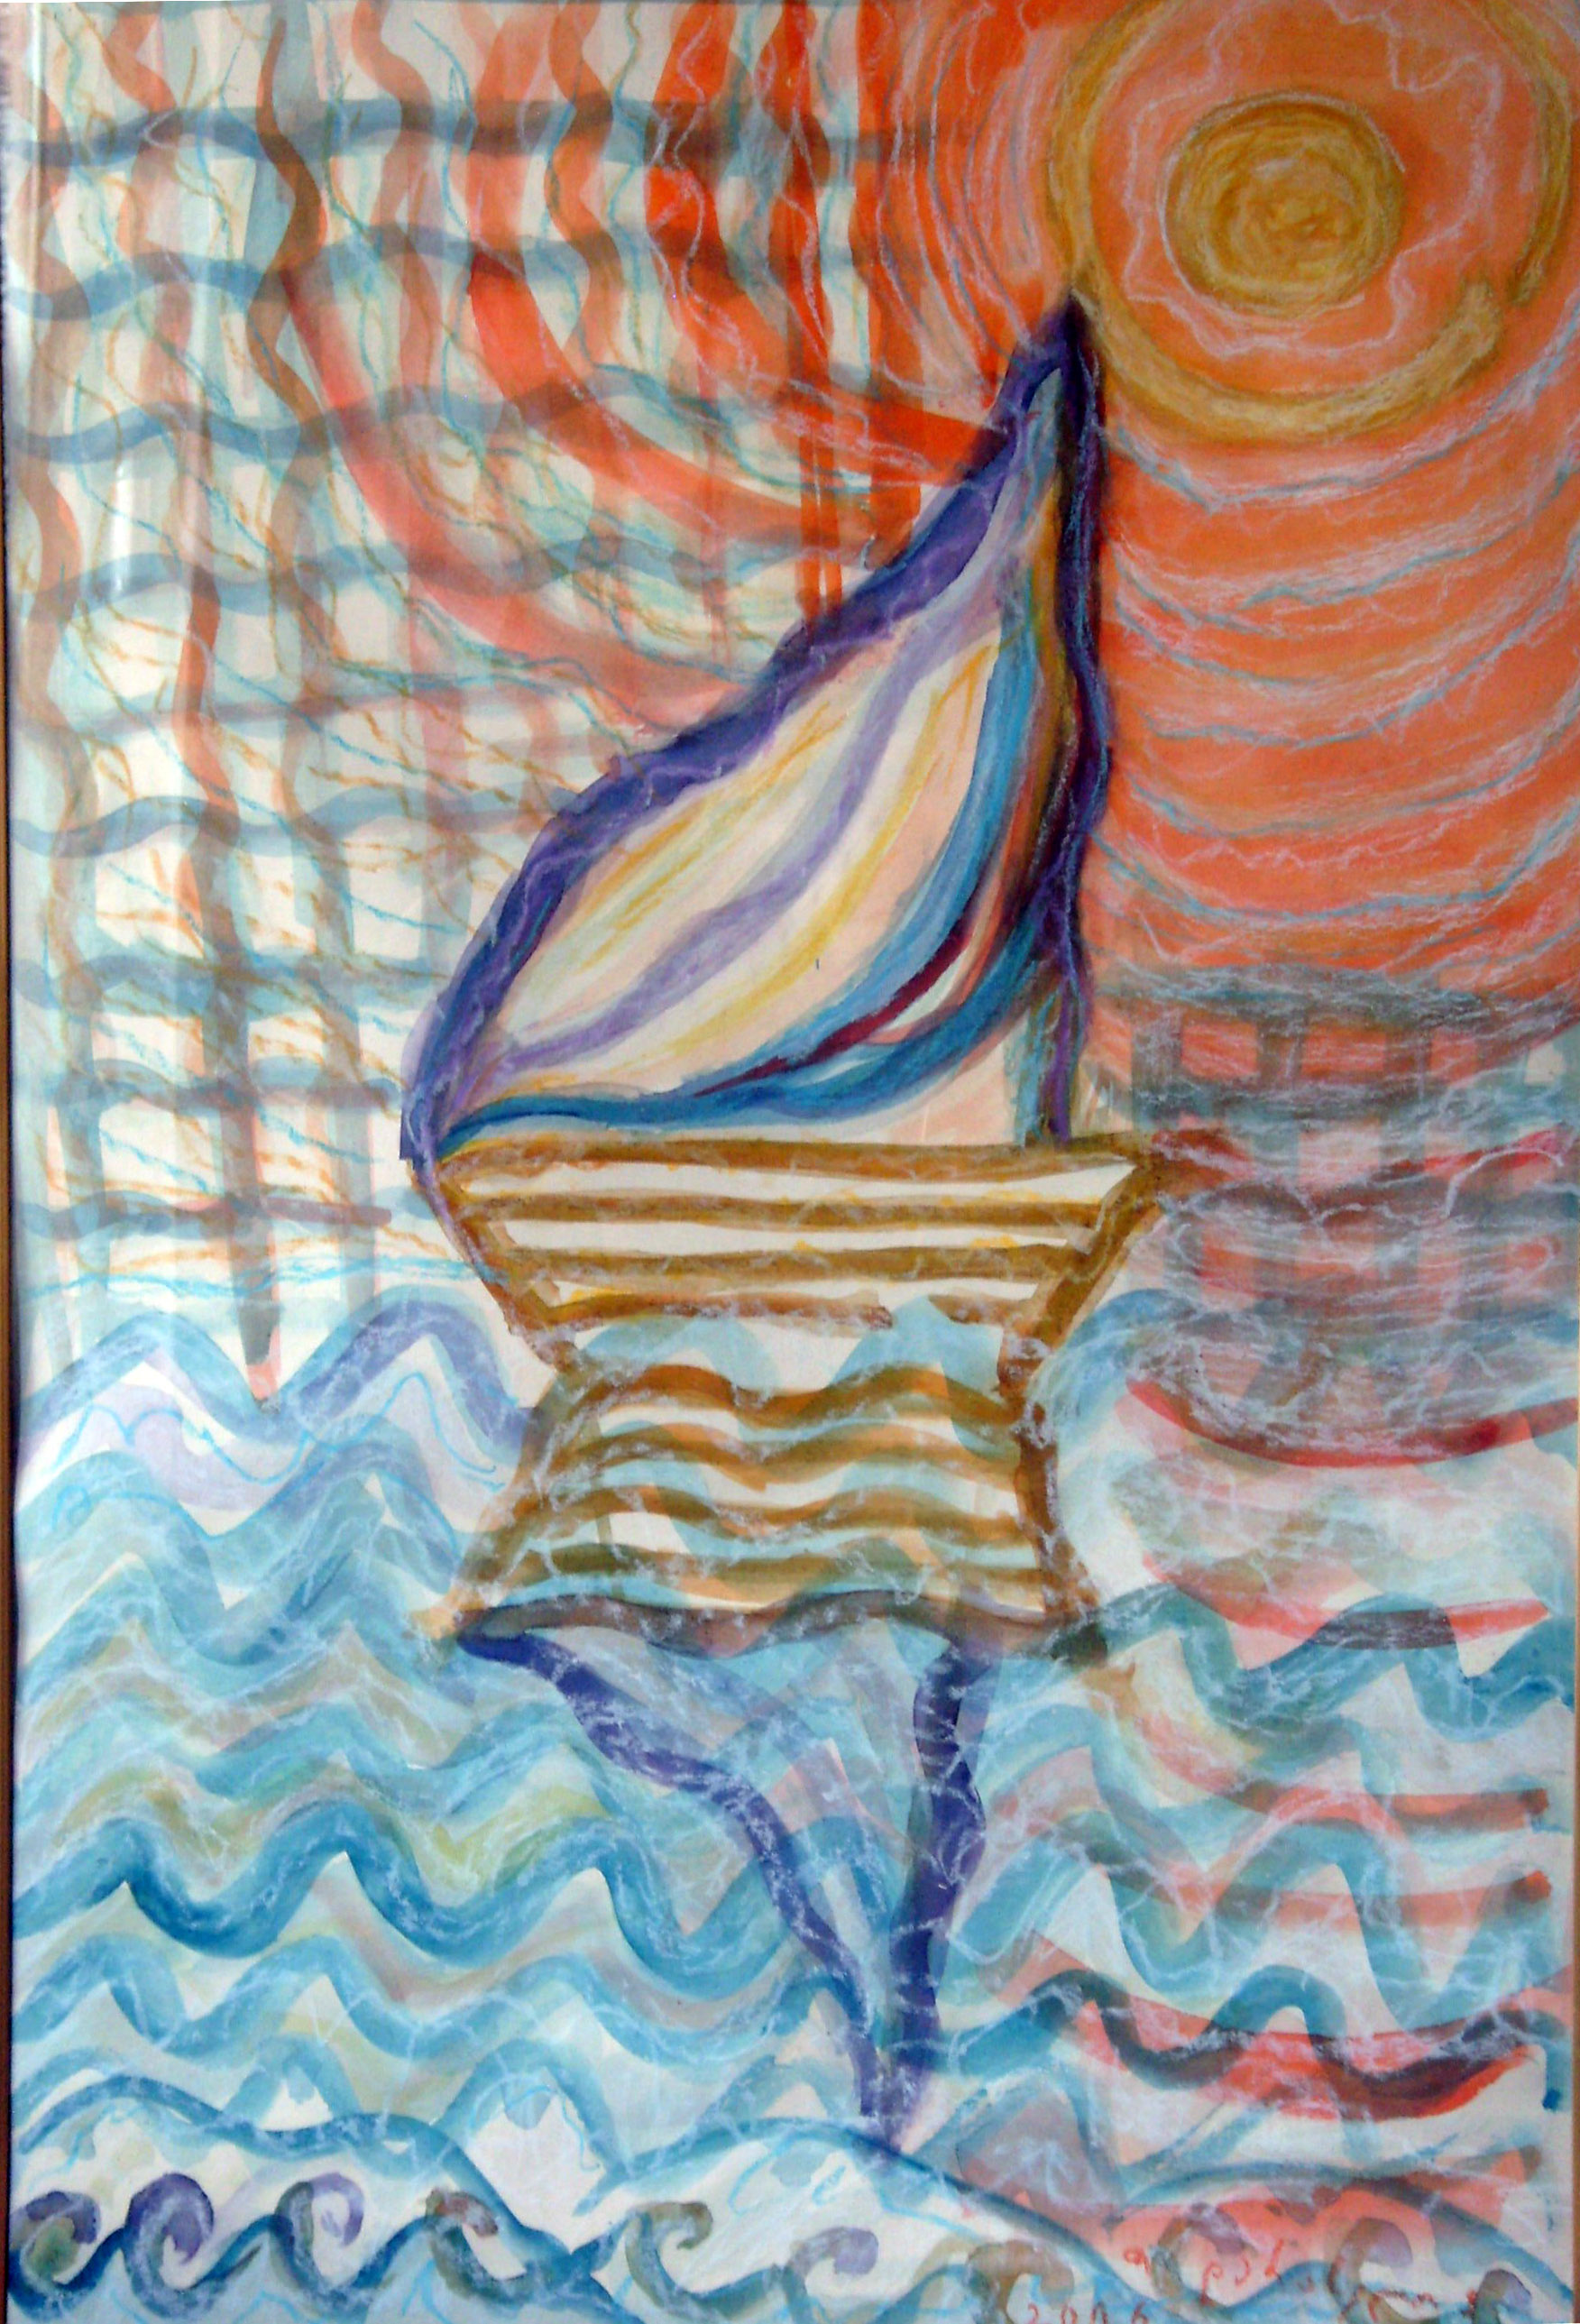 The Sail, 41x61cm, watercolour, oil pastel, cardboard, 2006